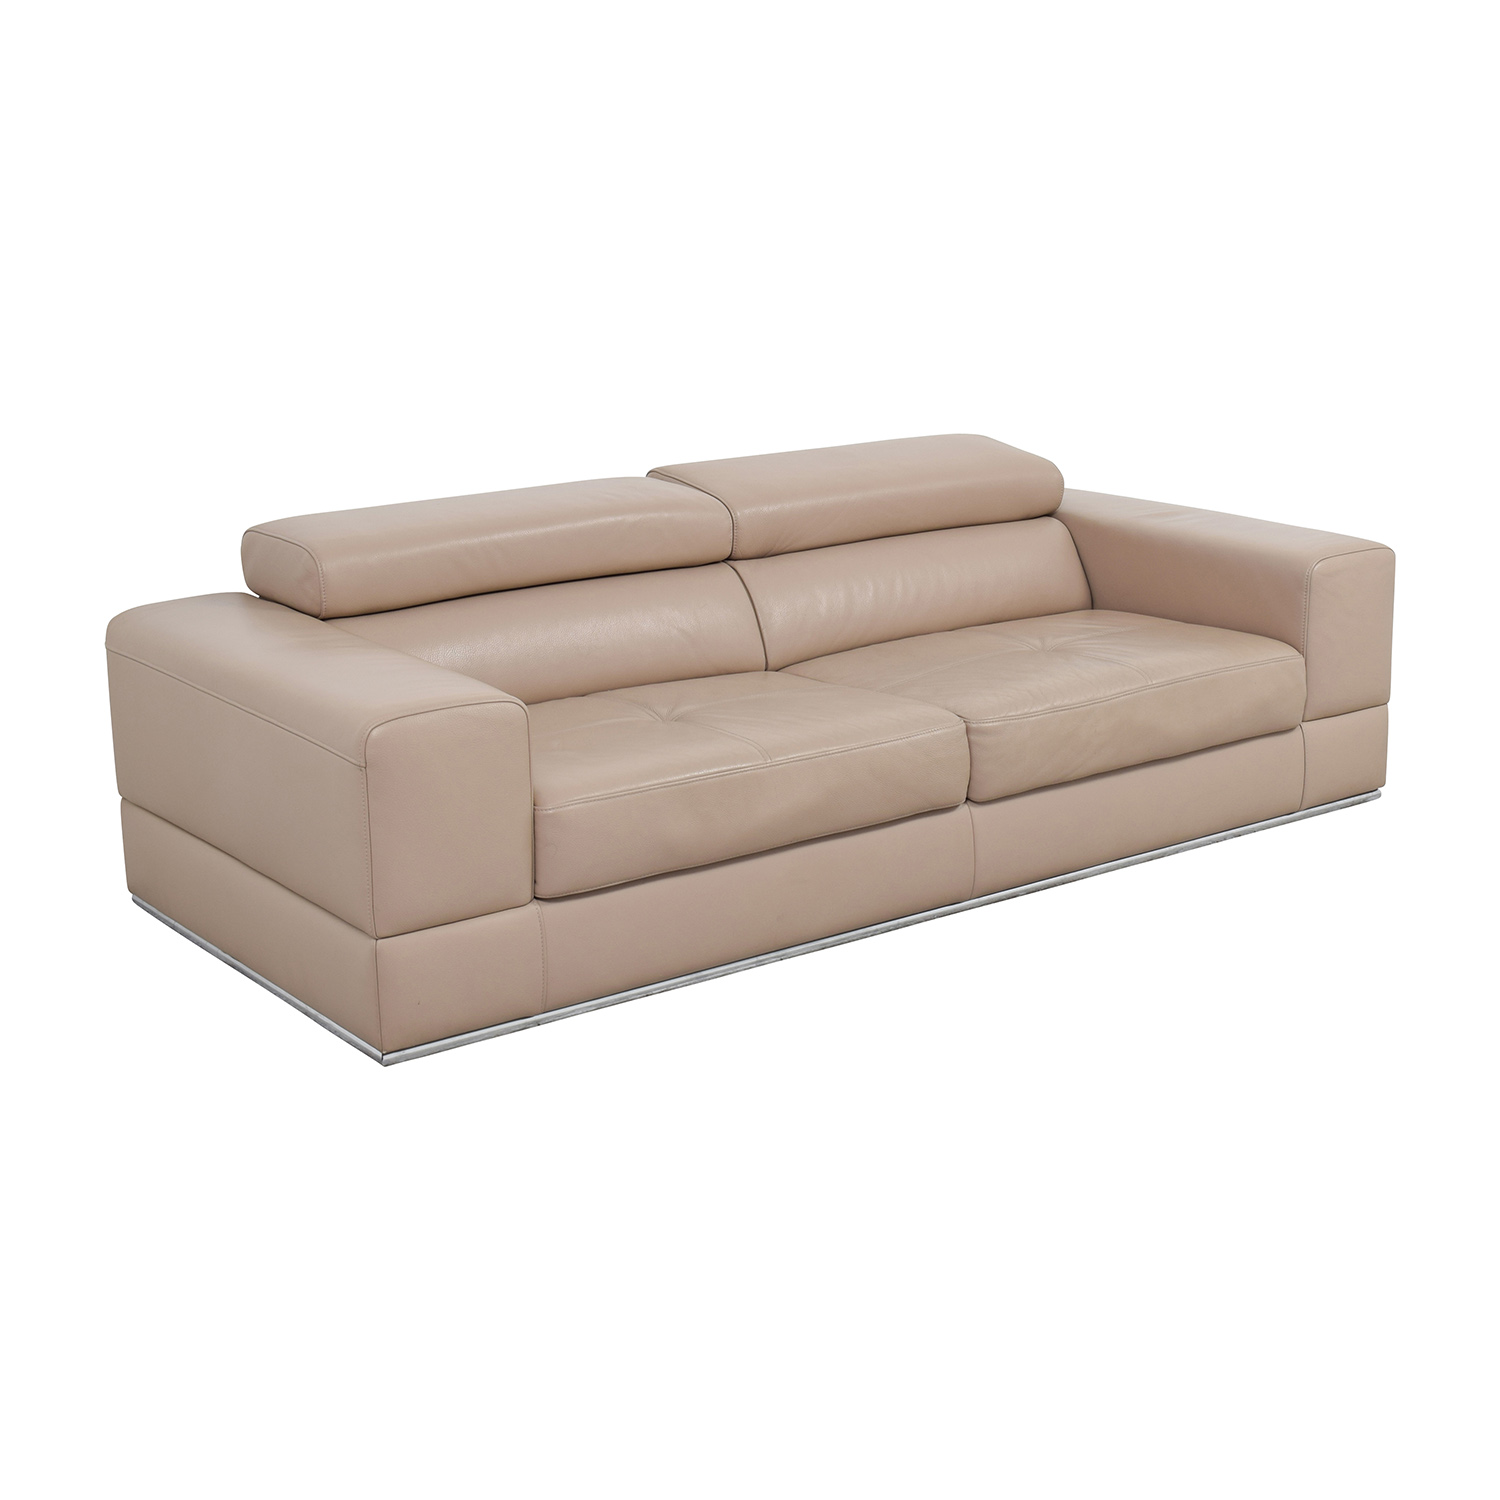 82 off lazzoni lazzoni beige leather sofa sofas. Black Bedroom Furniture Sets. Home Design Ideas